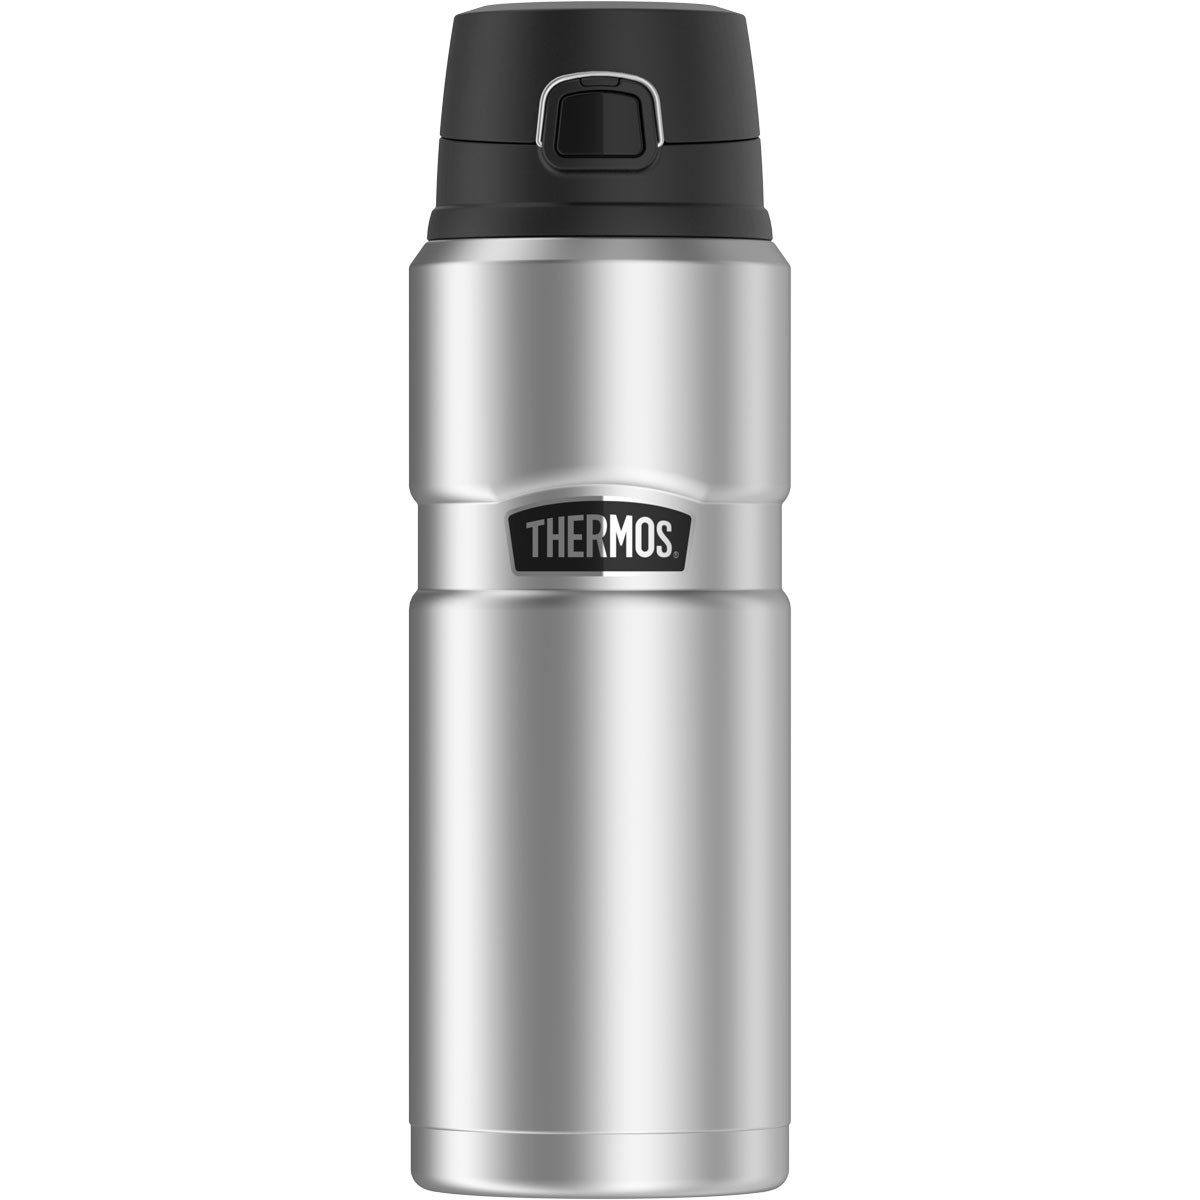 thumbnail 16 - Thermos 24 oz. Stainless King Vacuum Insulated Stainless Steel Drink Bottle